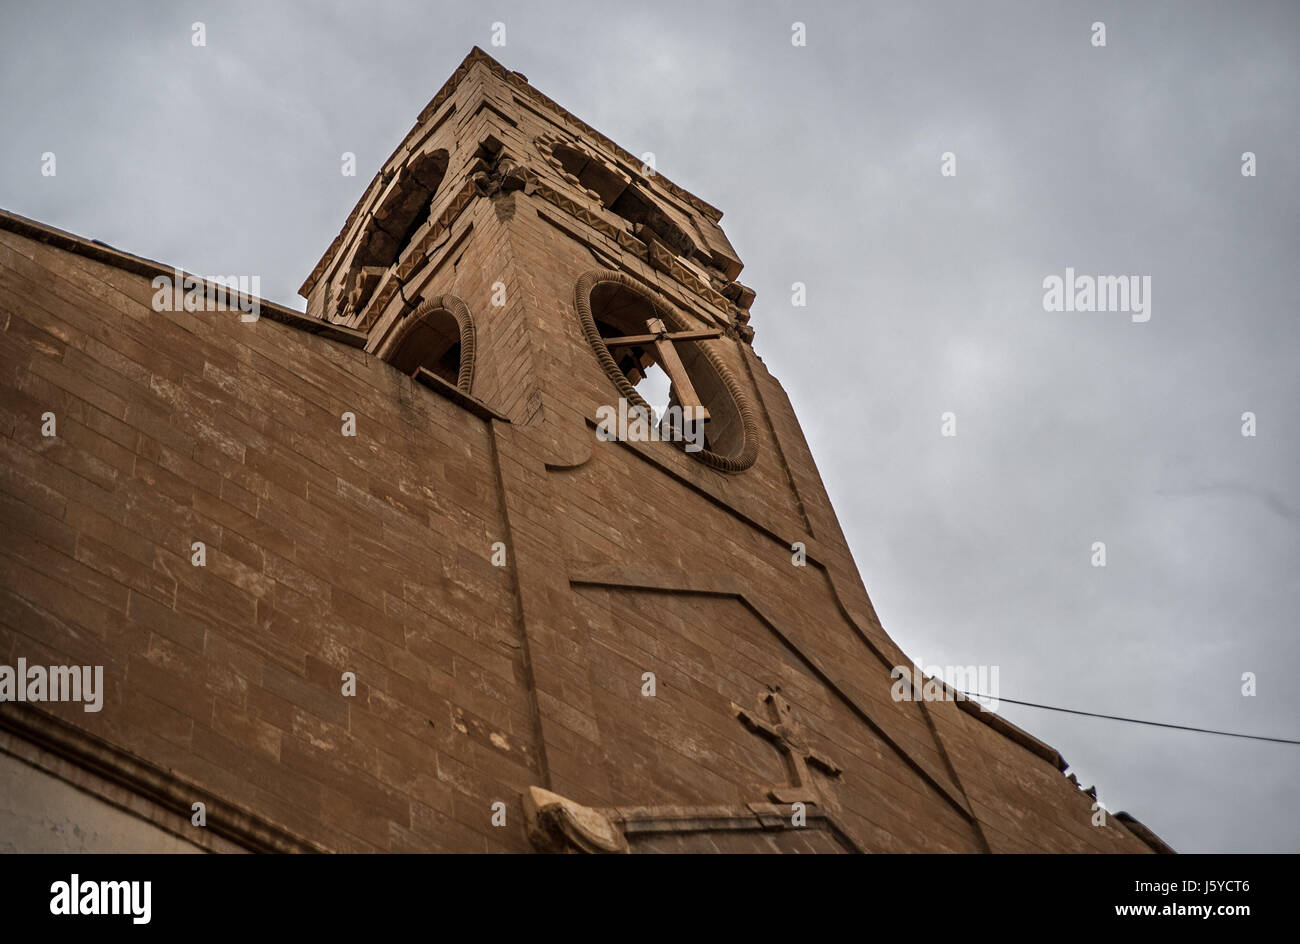 The Immaculate Conception Church tower stands destroyed after ISIS took over the Christian town of Qaraqosh in Iraq which was liberated from Islamic State in 2016. Stock Photo